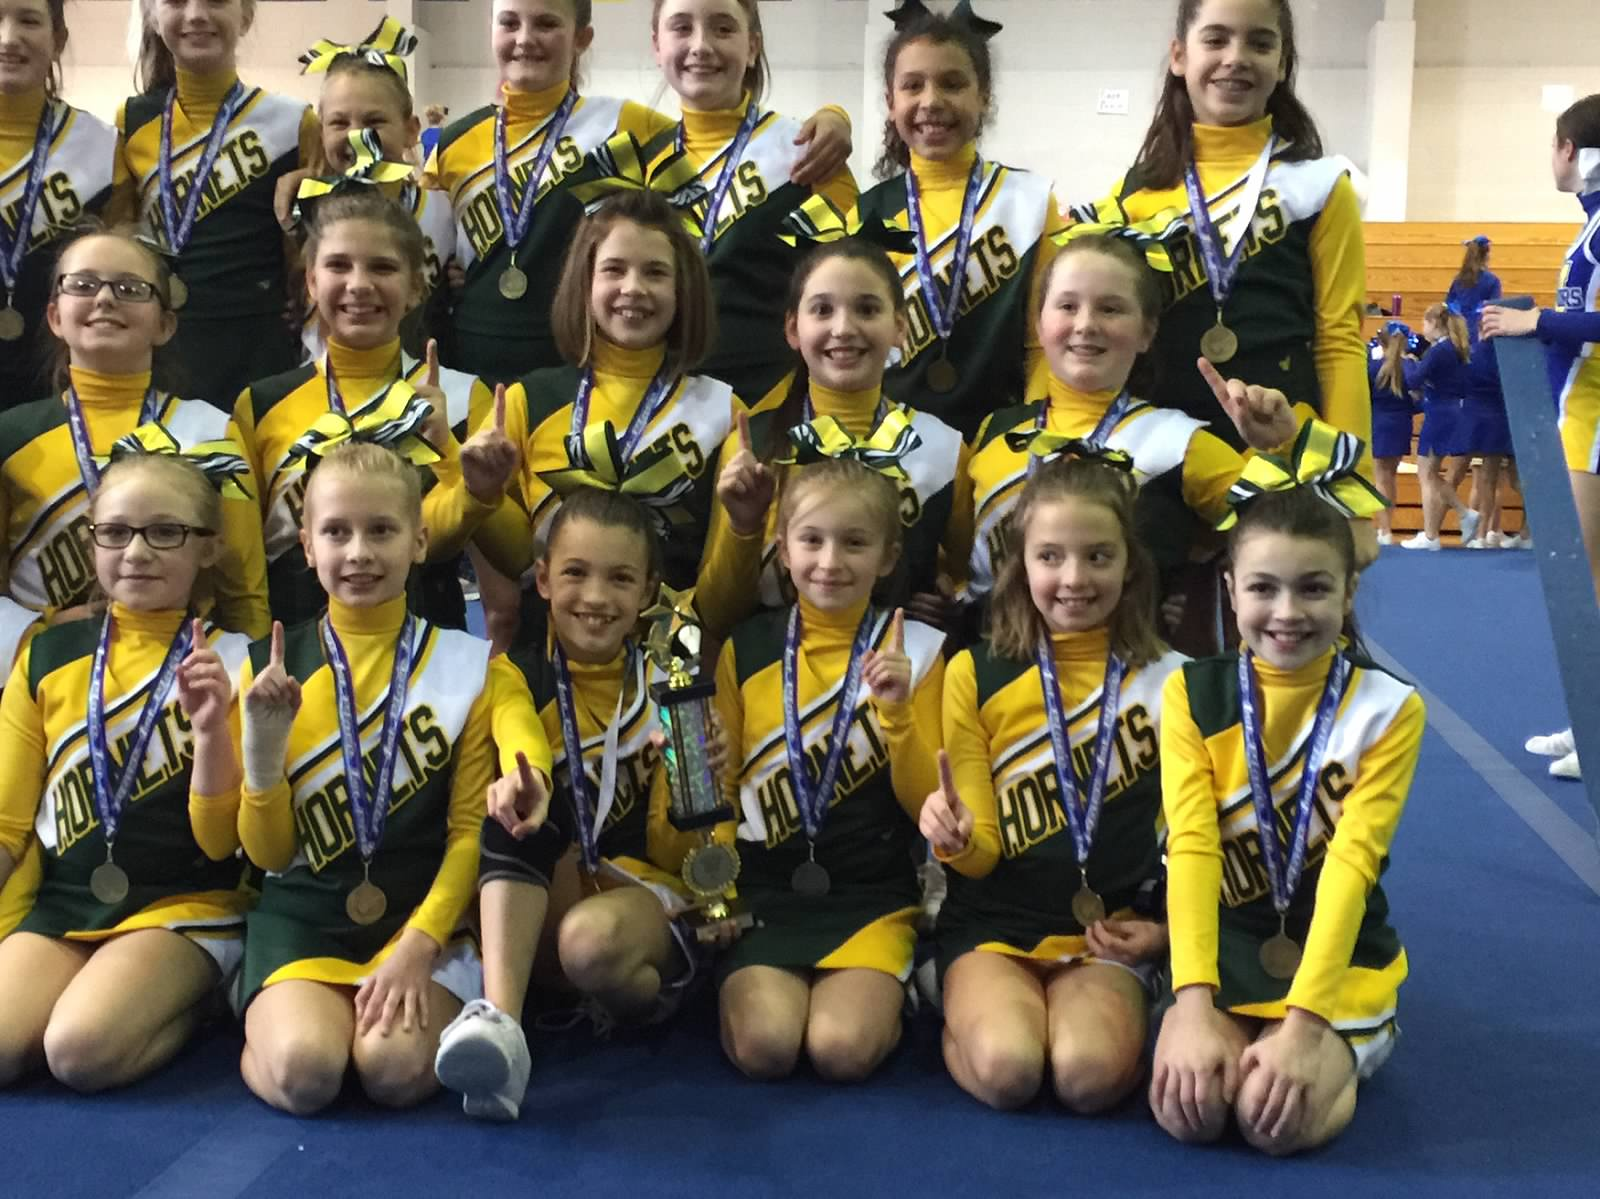 Pictures East Penn Youth Cheerleading Association